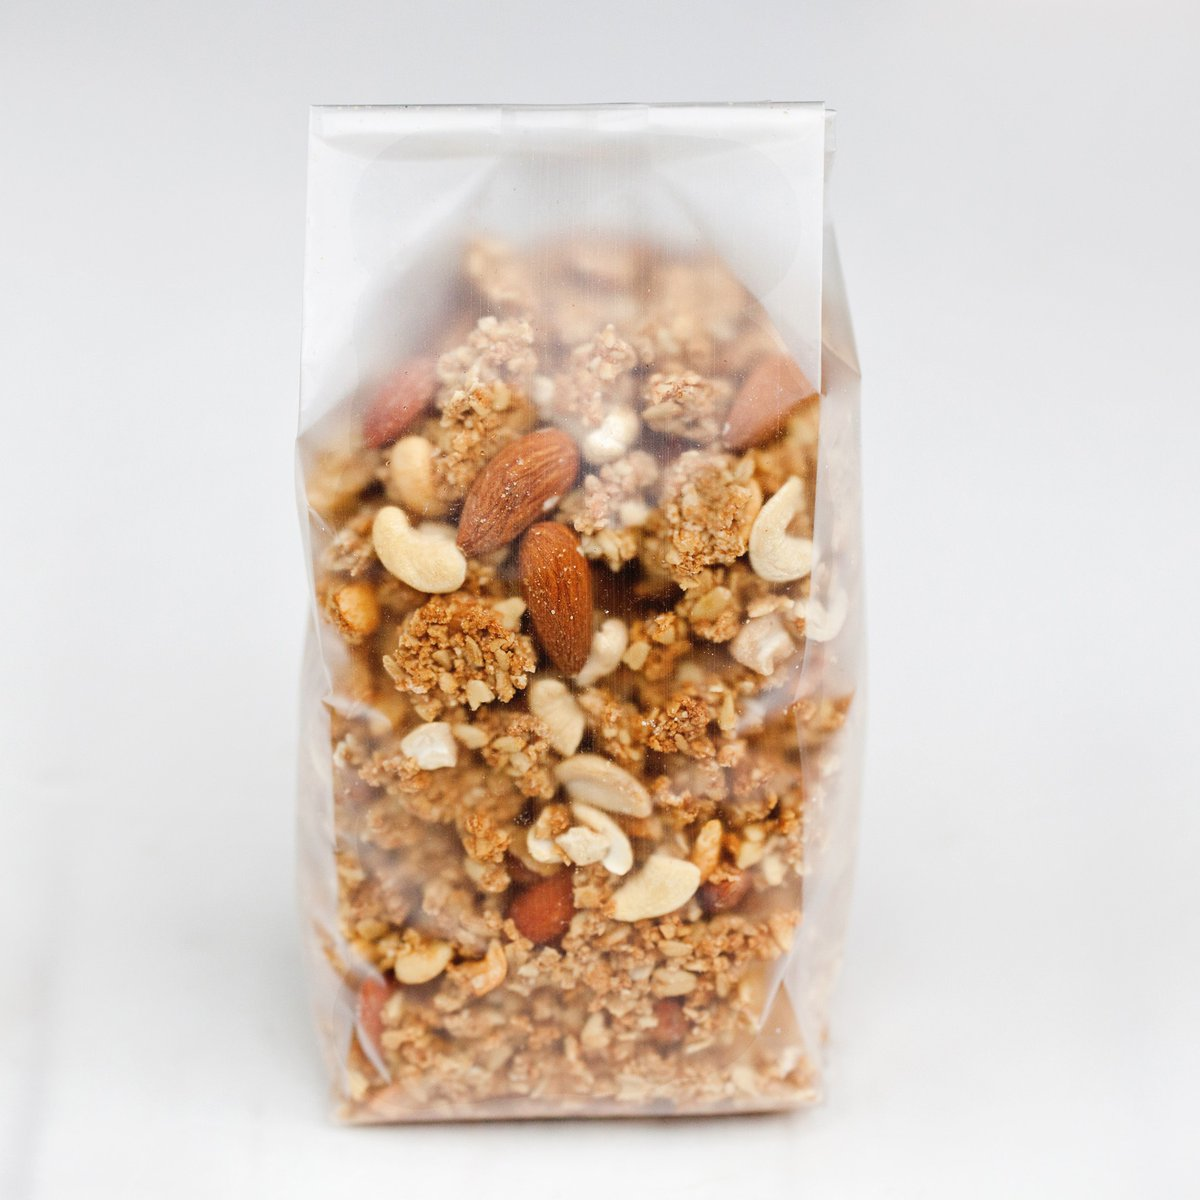 We're straight-talking here at Yock and believe in complete transparency. We also believe completely in what we do: the recipe, the wholesome ingredients, the wholegrain British oats, the taste and of course that big crunch from those delicious nutty clusters!  #ispygreattaste pic.twitter.com/wWKWZ61R1U